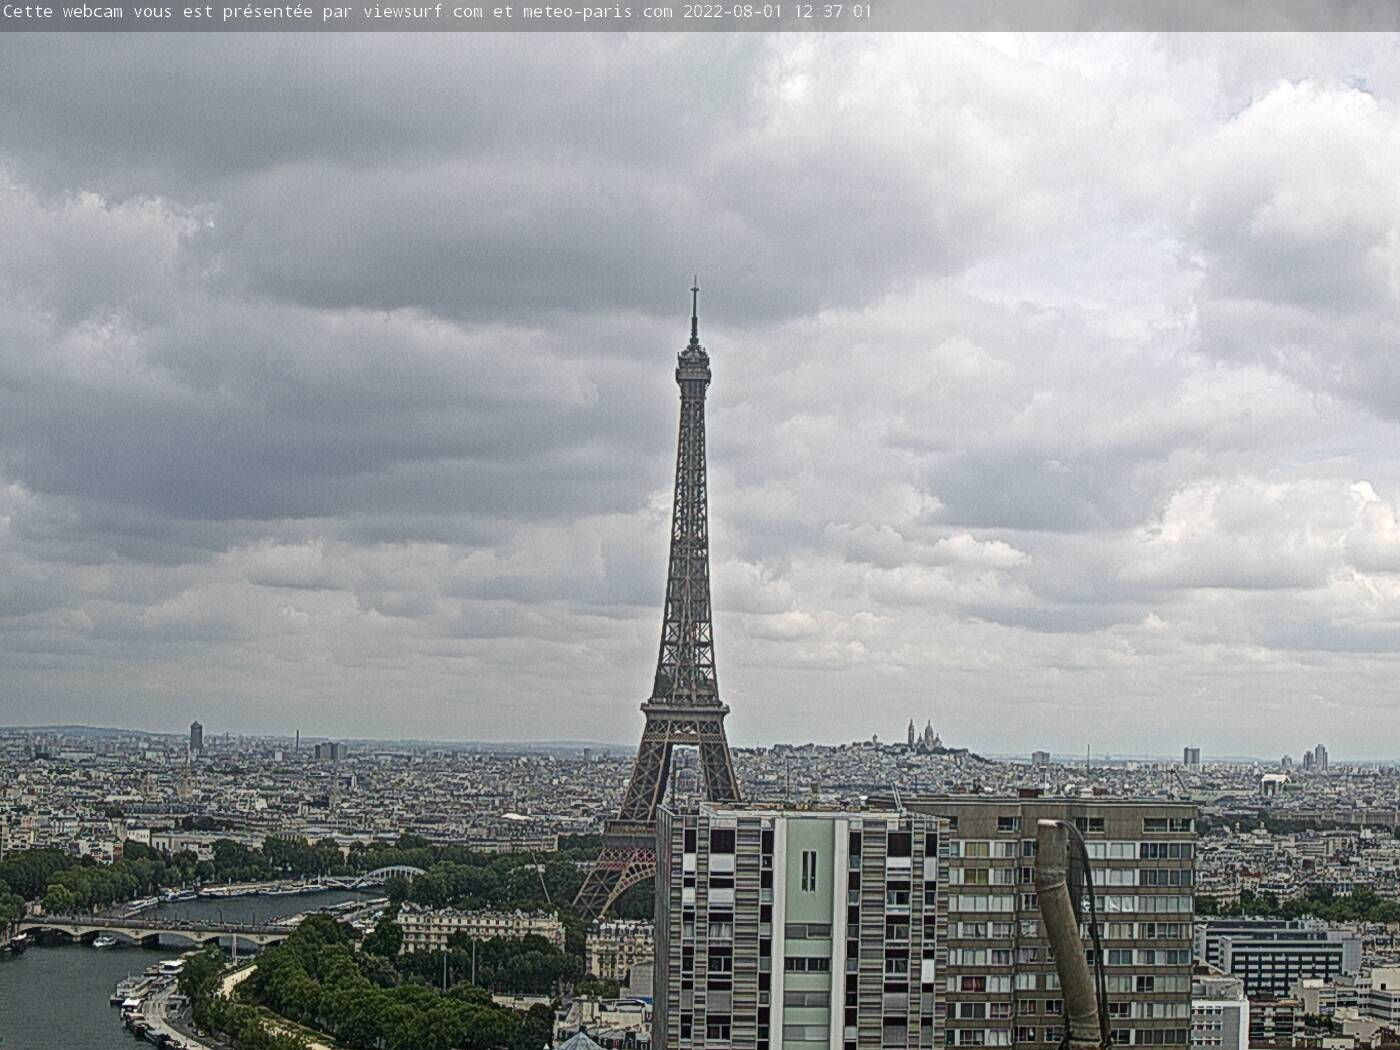 paris webcam